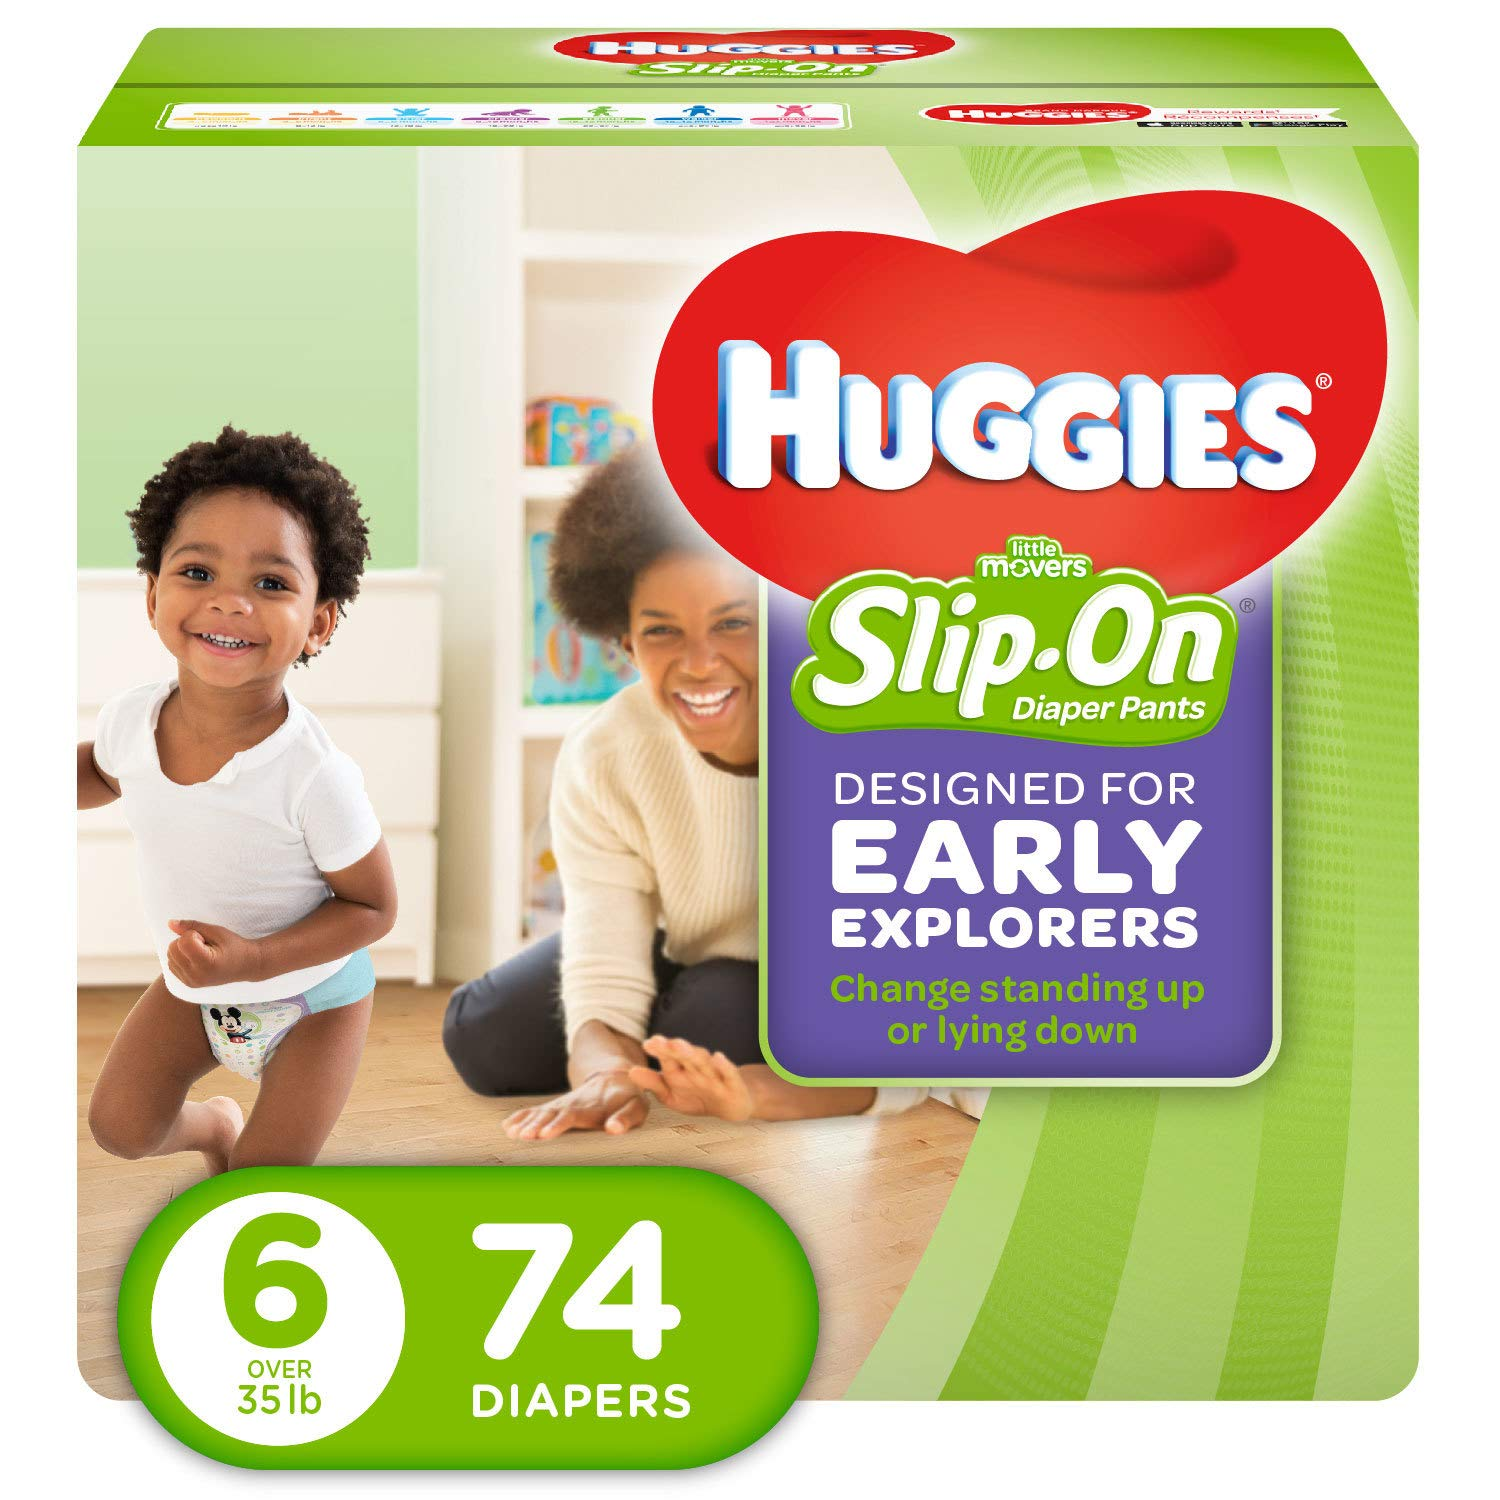 Huggies Little Movers Slip-On Diapers, Size 6, 74 Count by Huggies